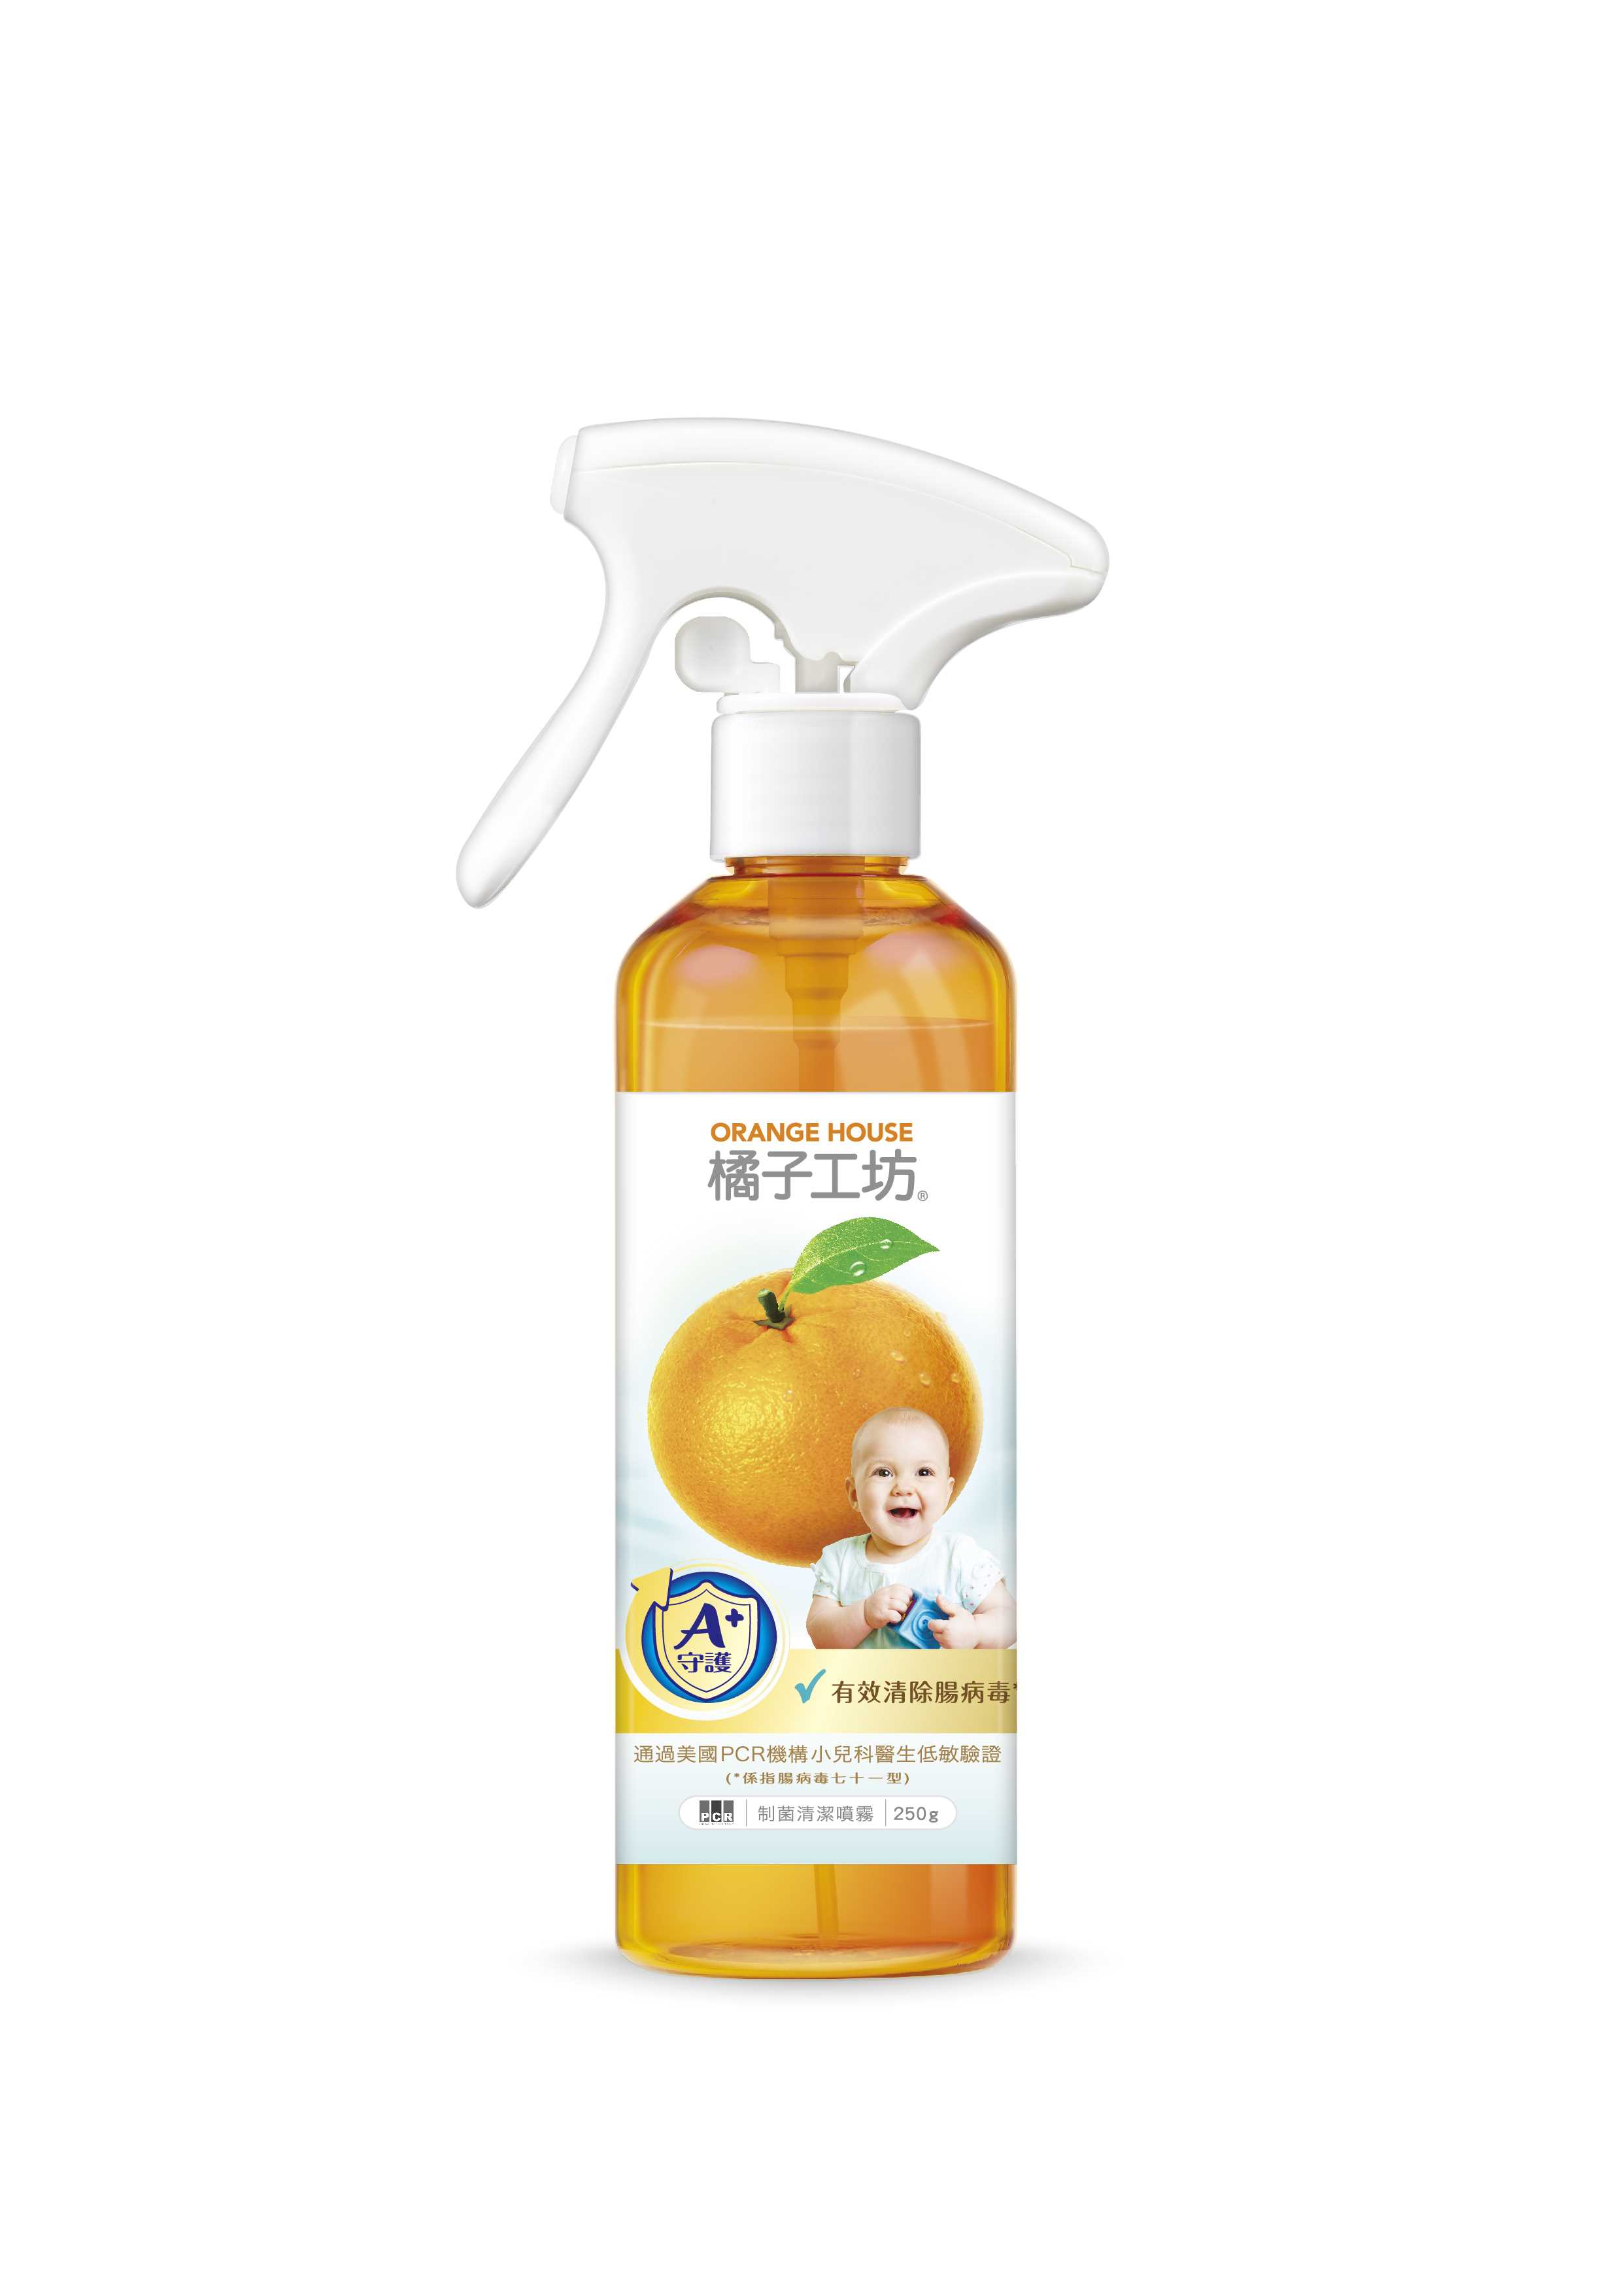 ORANGE HOUSE BACTERIA CLEANING SPRAY 250g